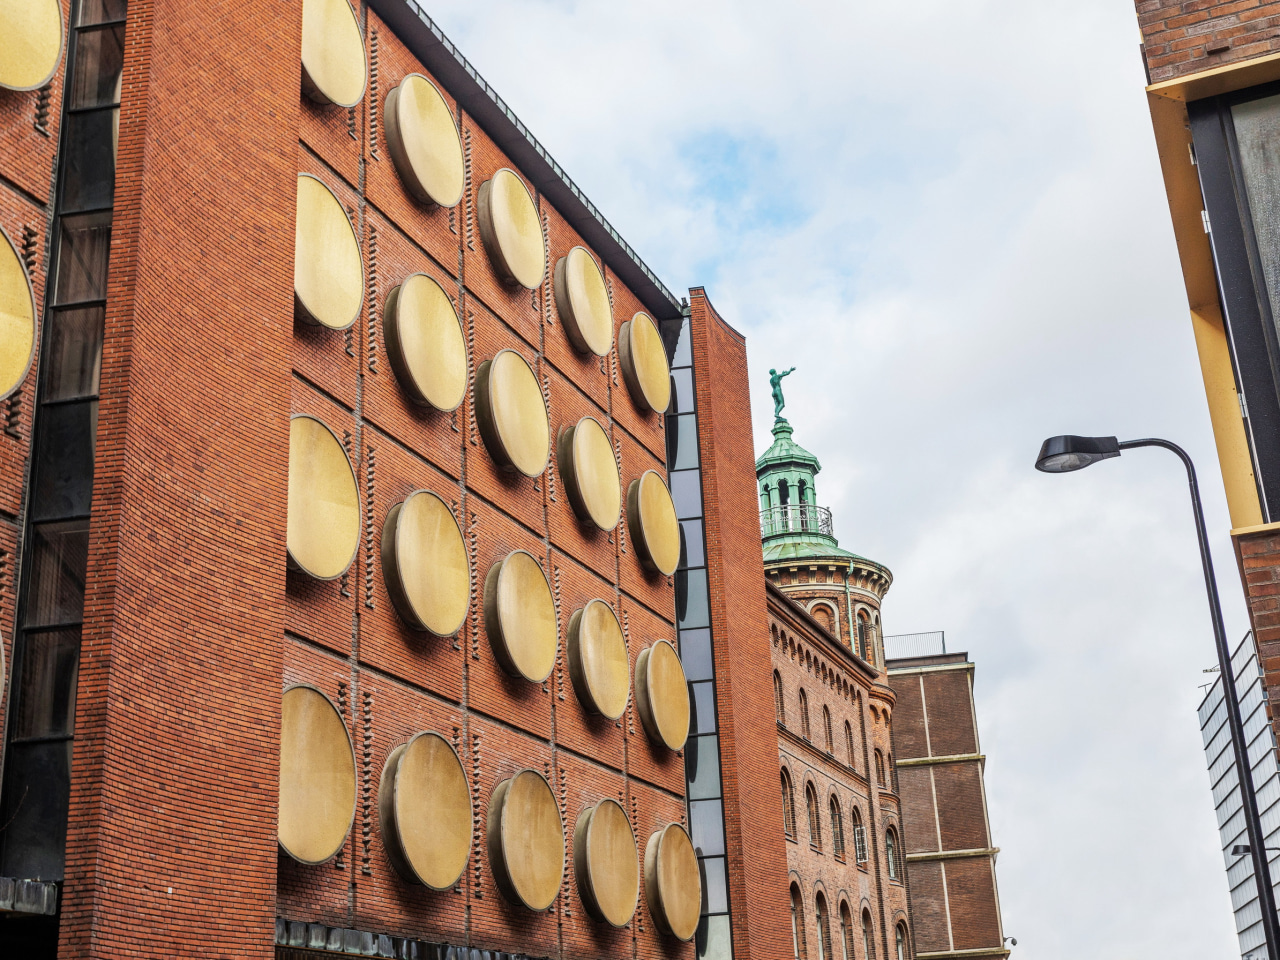 Adorning the shell of the building are over architecture, brick, brickwork, building, city, downtown, facade, iron, metropolitan area, neighbourhood, signage, sky, street, town, urban area, wall, white, orange